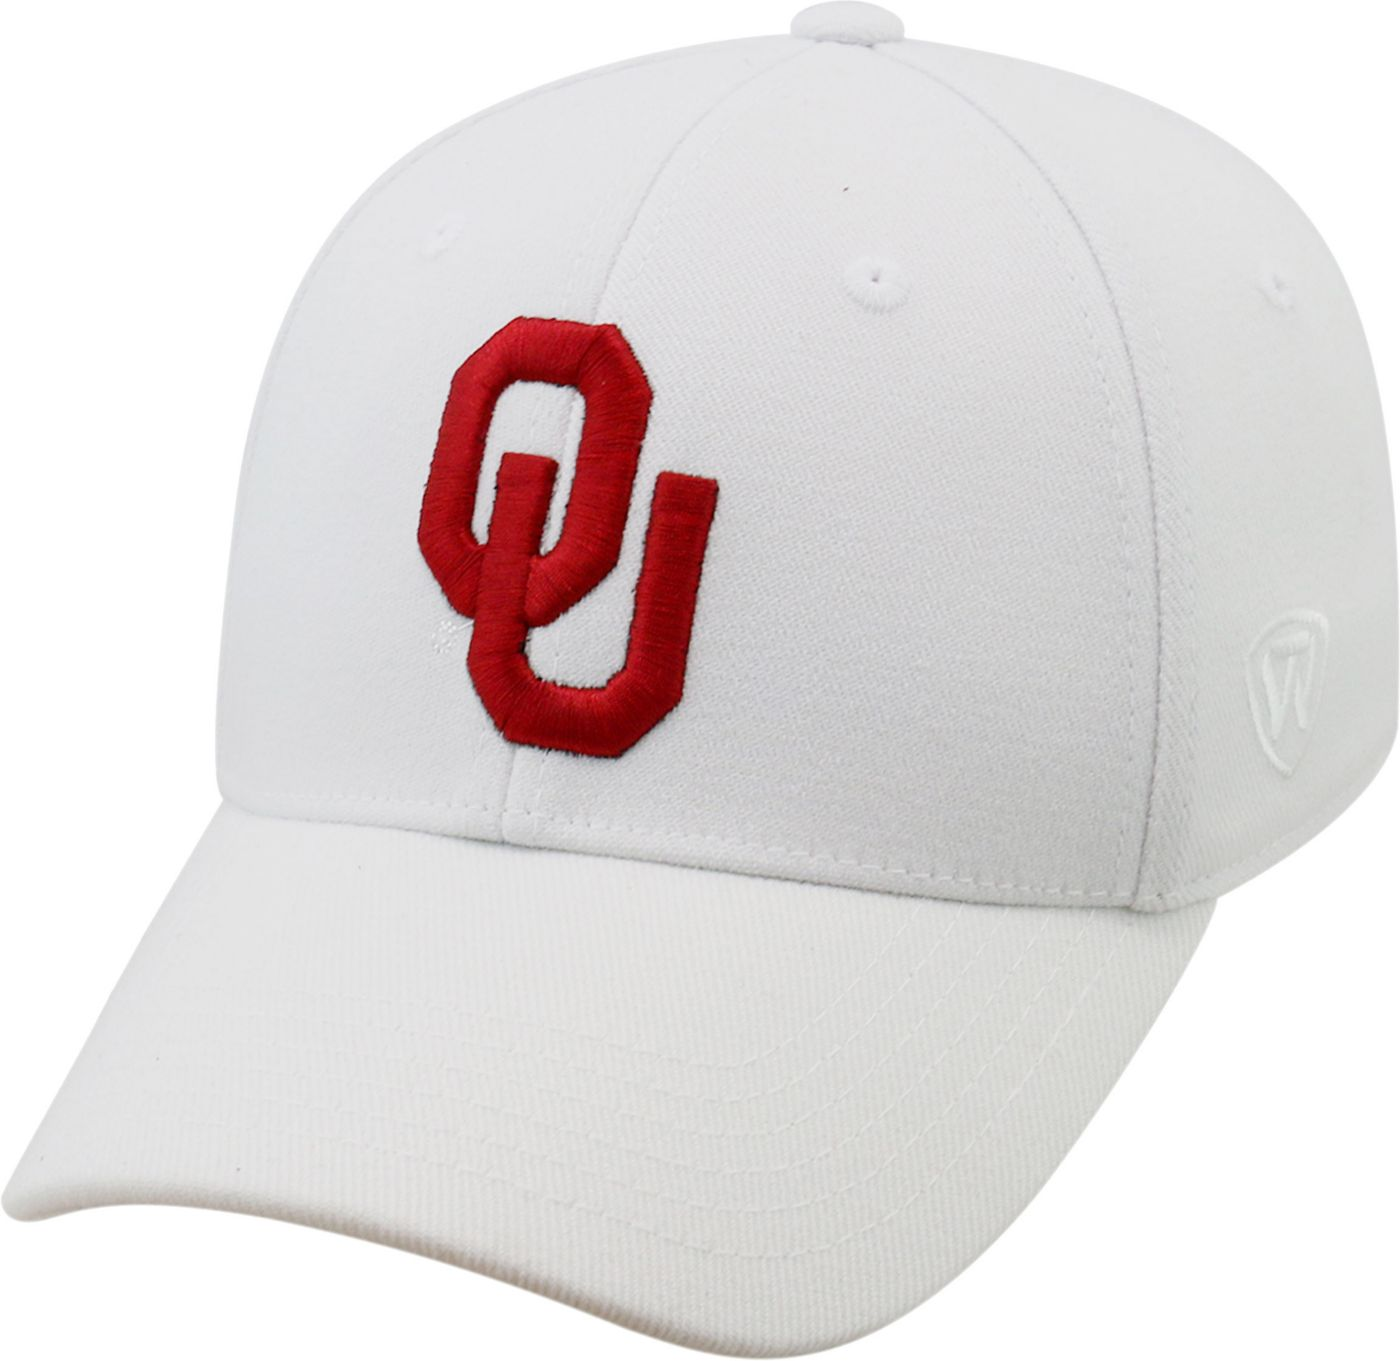 Top of the World Men's Oklahoma Sooners White Premium Collection M-Fit Hat